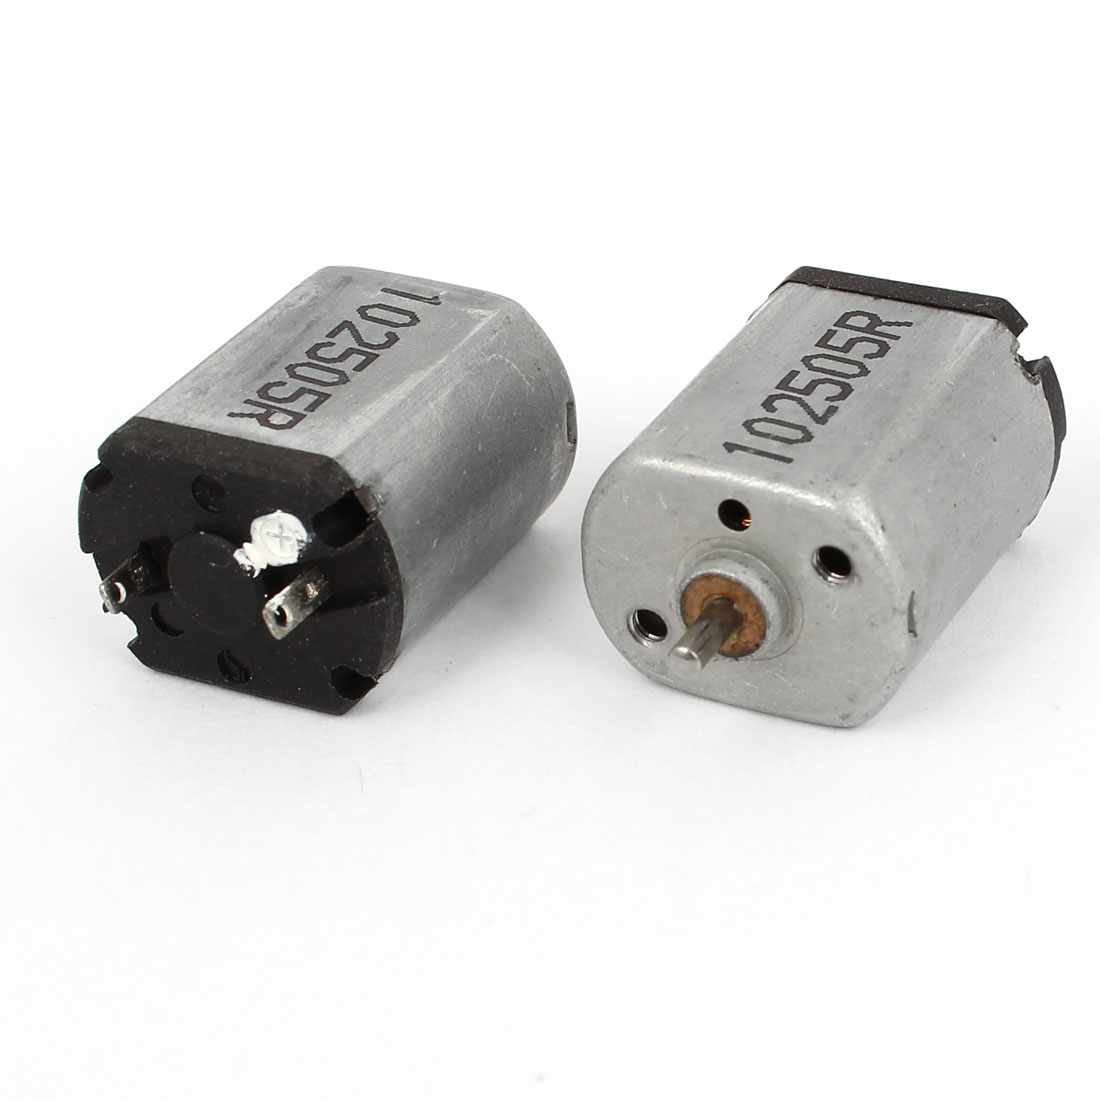 2pcs 10500RPM Speed 1.5mm Shaft High Torque Electric Geared Box Motor DC 3-6V